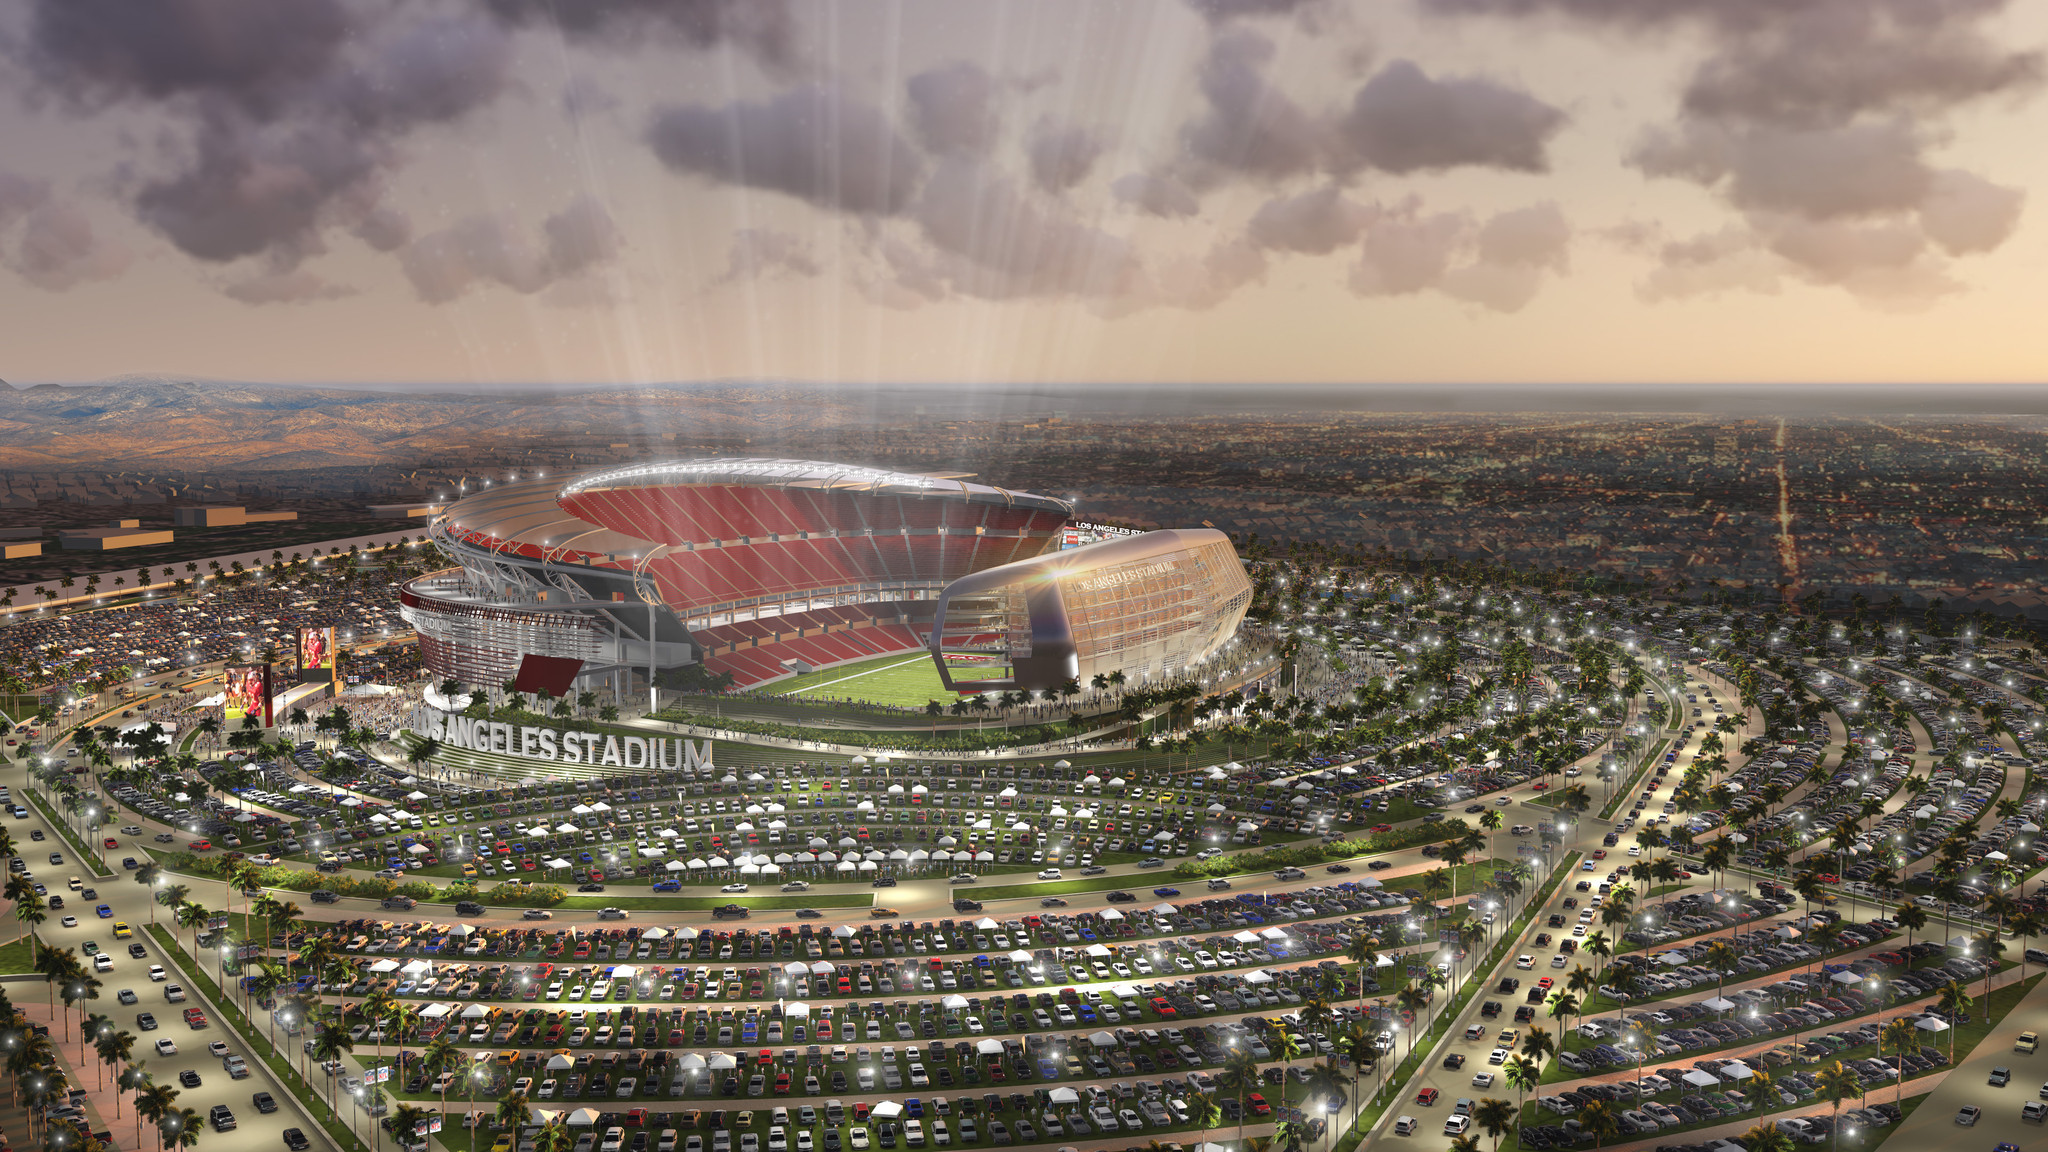 Carson Nfl Stadium Plan Report Projects 500 Million